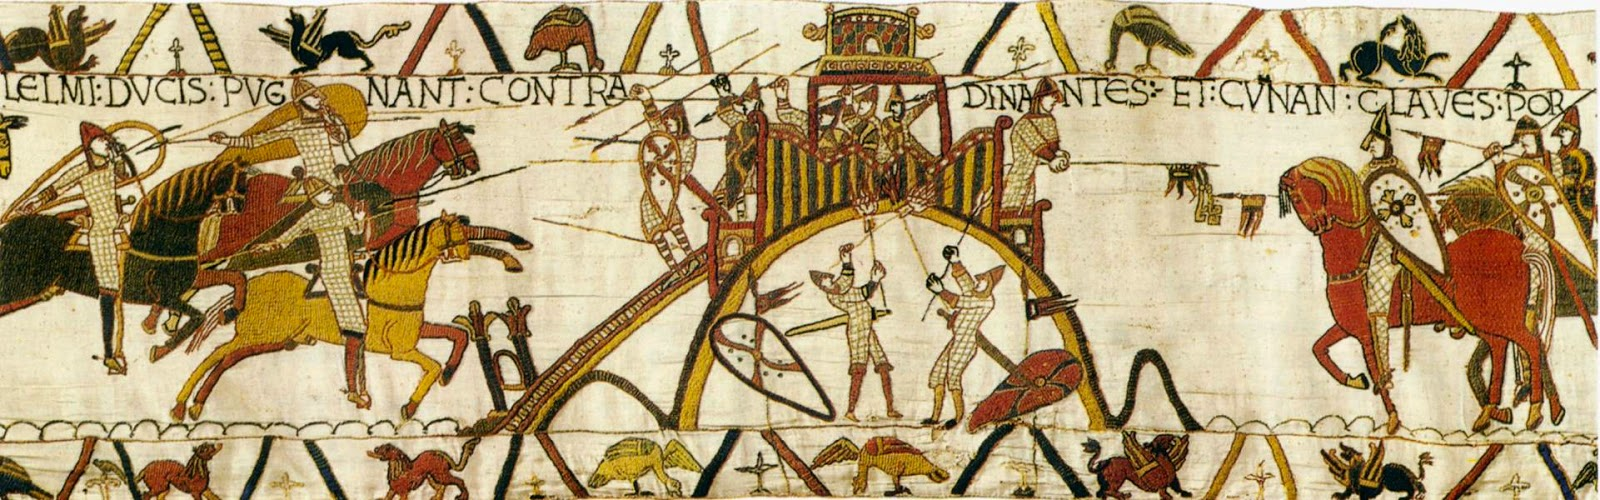 art and women spring post women s roles from middle ages the bayeux tapestry 1086